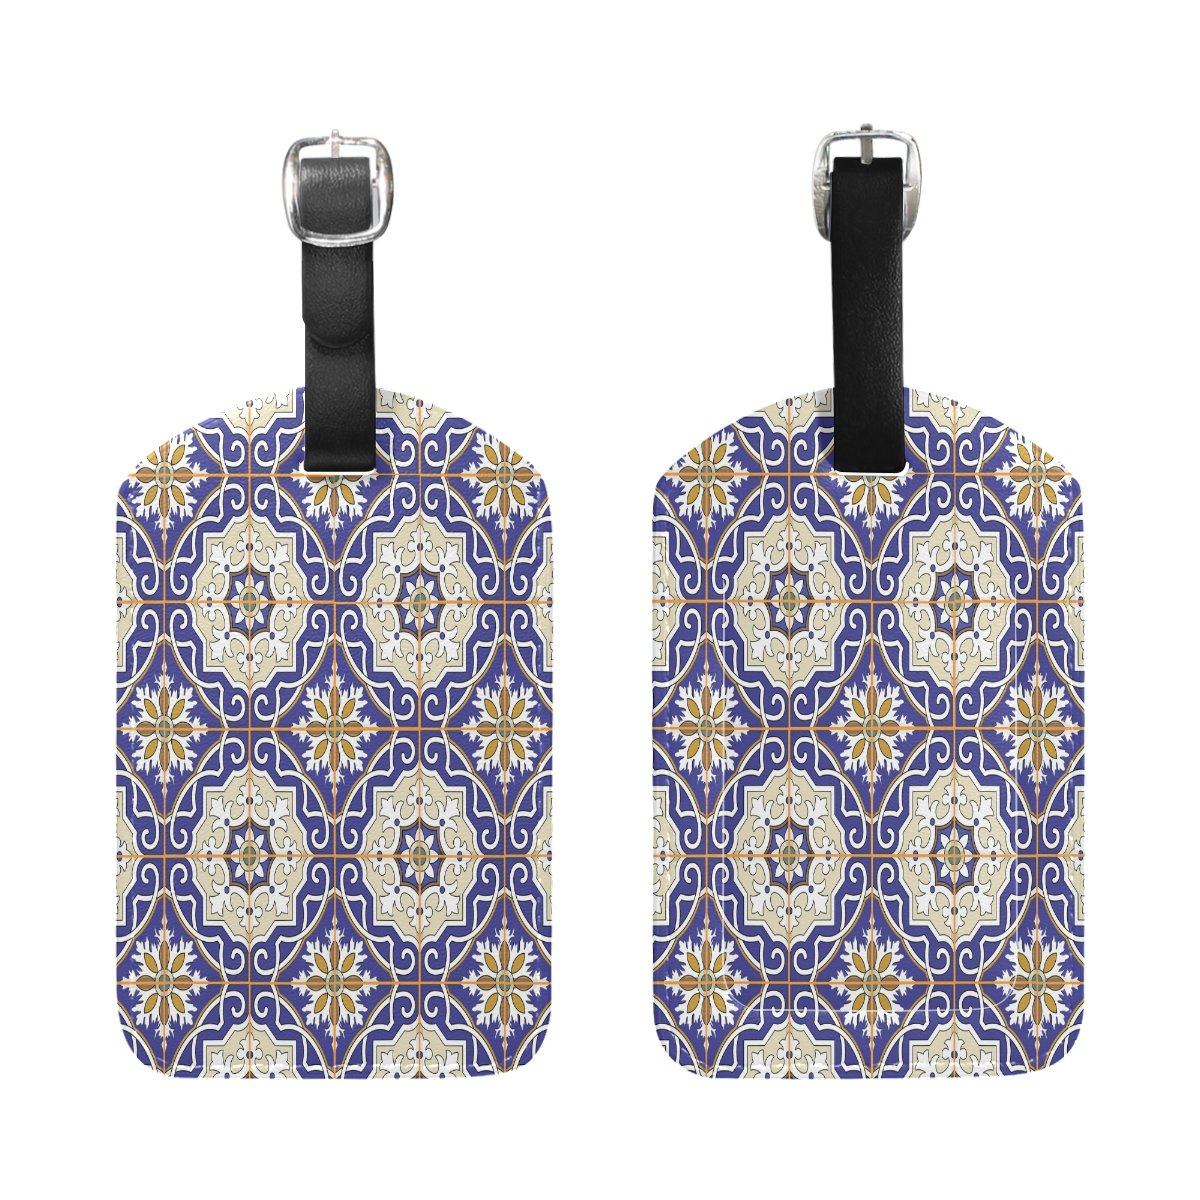 1Pcs Saobao Travel Luggage Tag Colorful Moroccan Tiles PU Leather Baggage Suitcase Travel ID Bag Tag